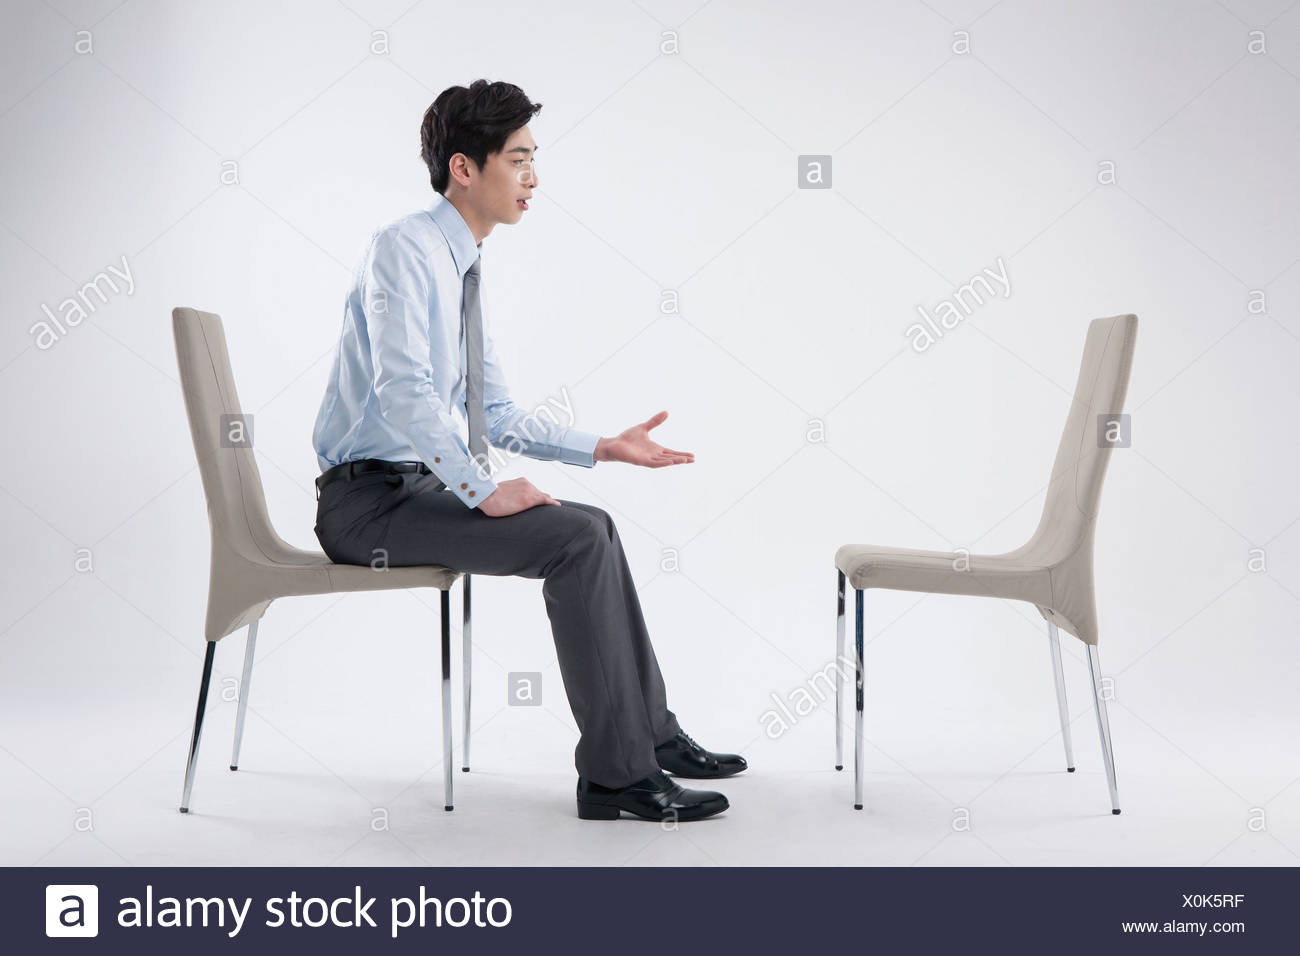 the vacant chair human jungle lazy boy wingback chairs a business man sitting and talking to an empty stock